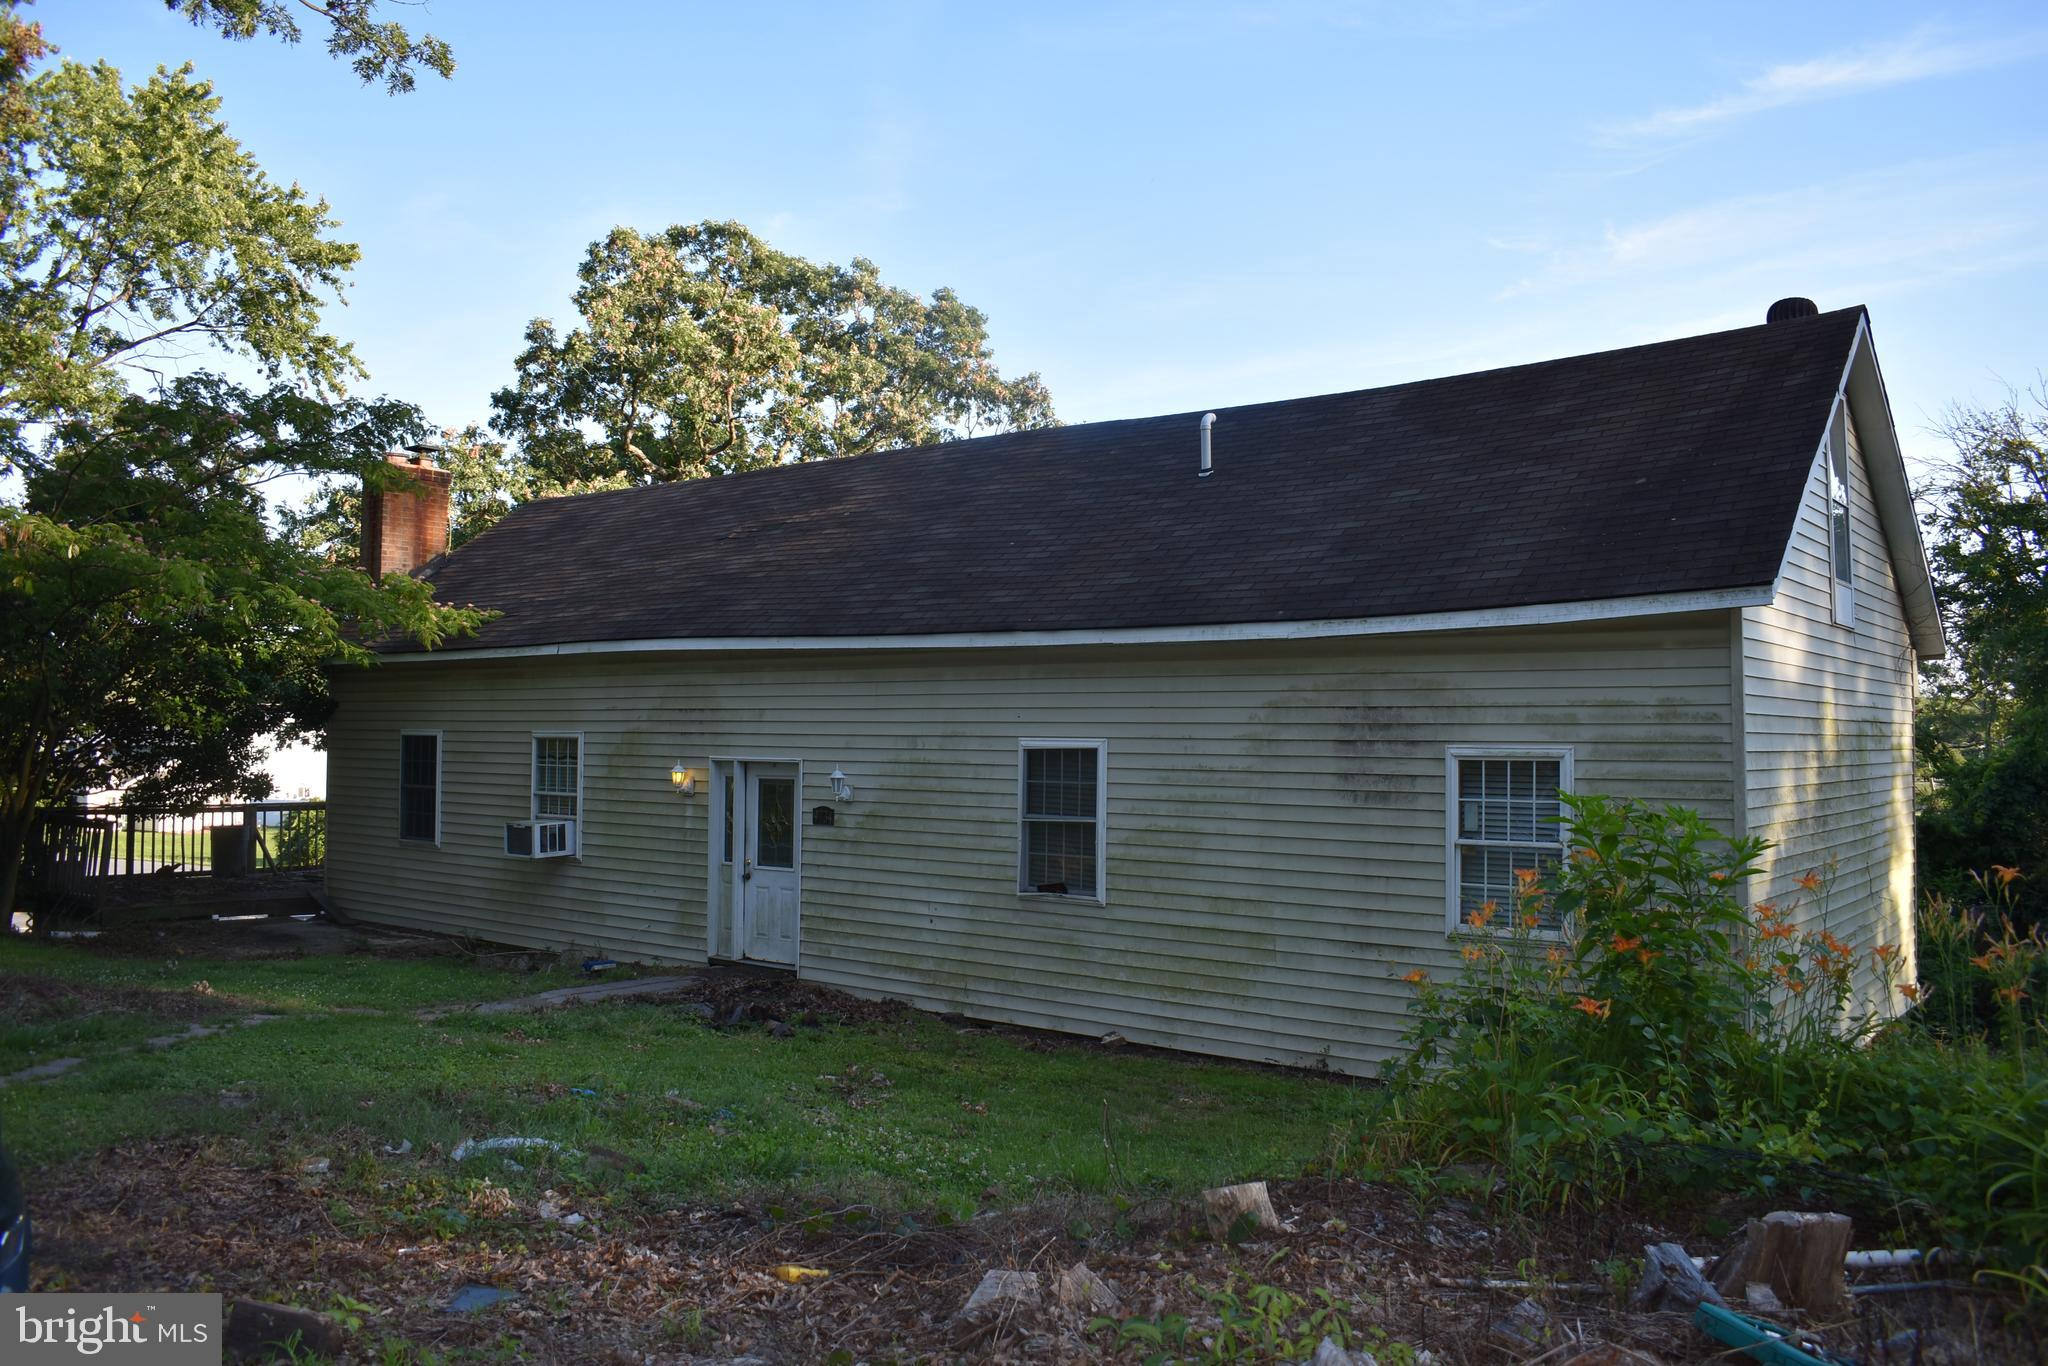 HANDYMAN DEAL!!  INVESTOR ALERT!!   2 BEDROOM 1 FULL BATH - OPEN FLOOR PLAN. FAMILY ROOM WITH WOOD STOVE AND DECK OFF THE SIDE. KITCHEN/DINING COMBO WITH ISLAND.  SHARED DRIVEWAY. PRICE REFLECTS WORK TO BE DONE!  WAITING FOR YOUR IDEAS. COME SEE THE POTENTIAL! HOME SOLD AS IS!